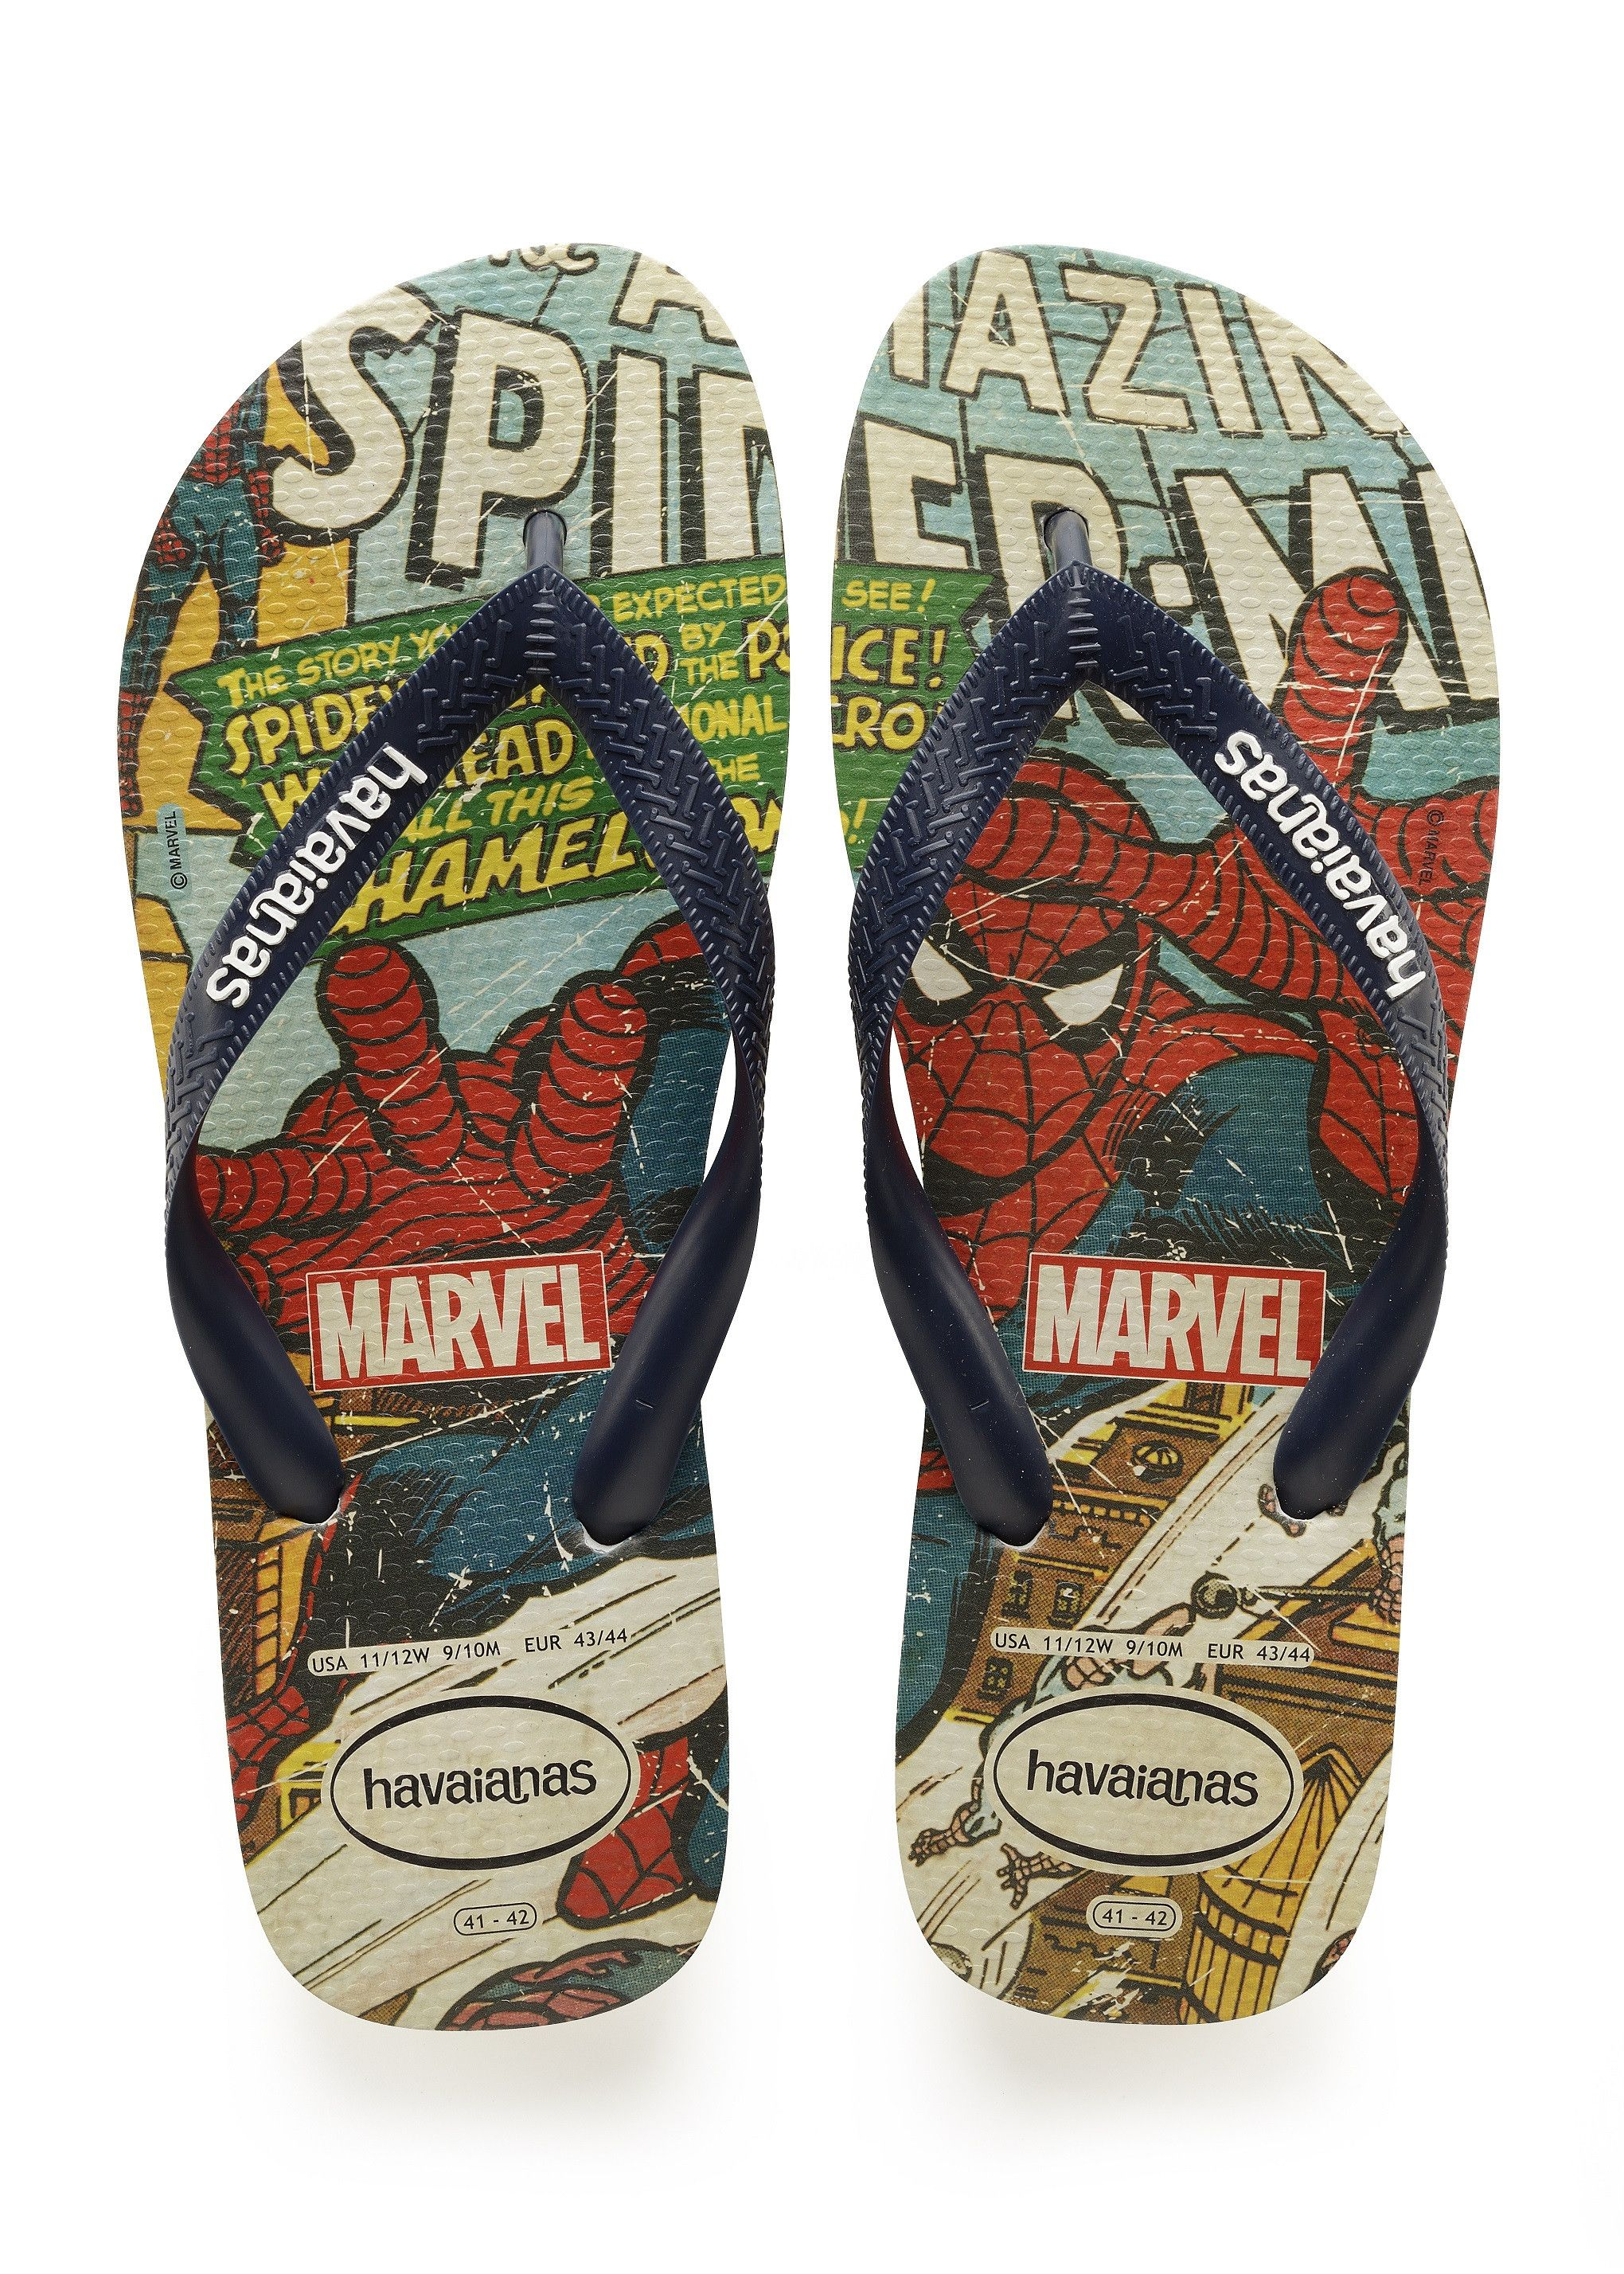 a1f8dee2a897b9 Havaianas Top Marvel Spiderman Sandal Beige Navy Blue Price From  £19.36